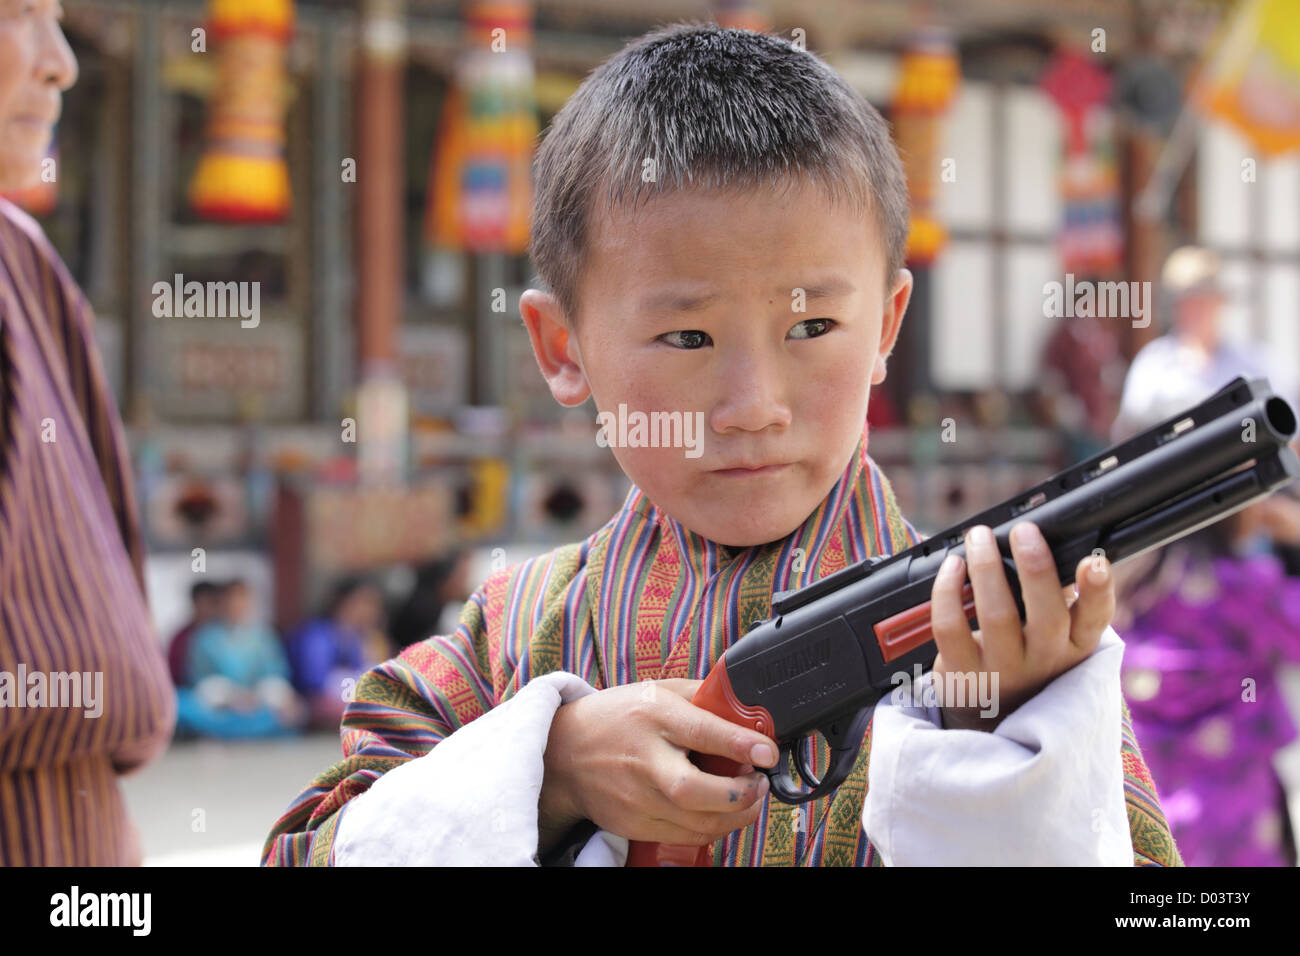 Little monk standing with a toy gun performing art at a festival in Bhutan - Stock Image